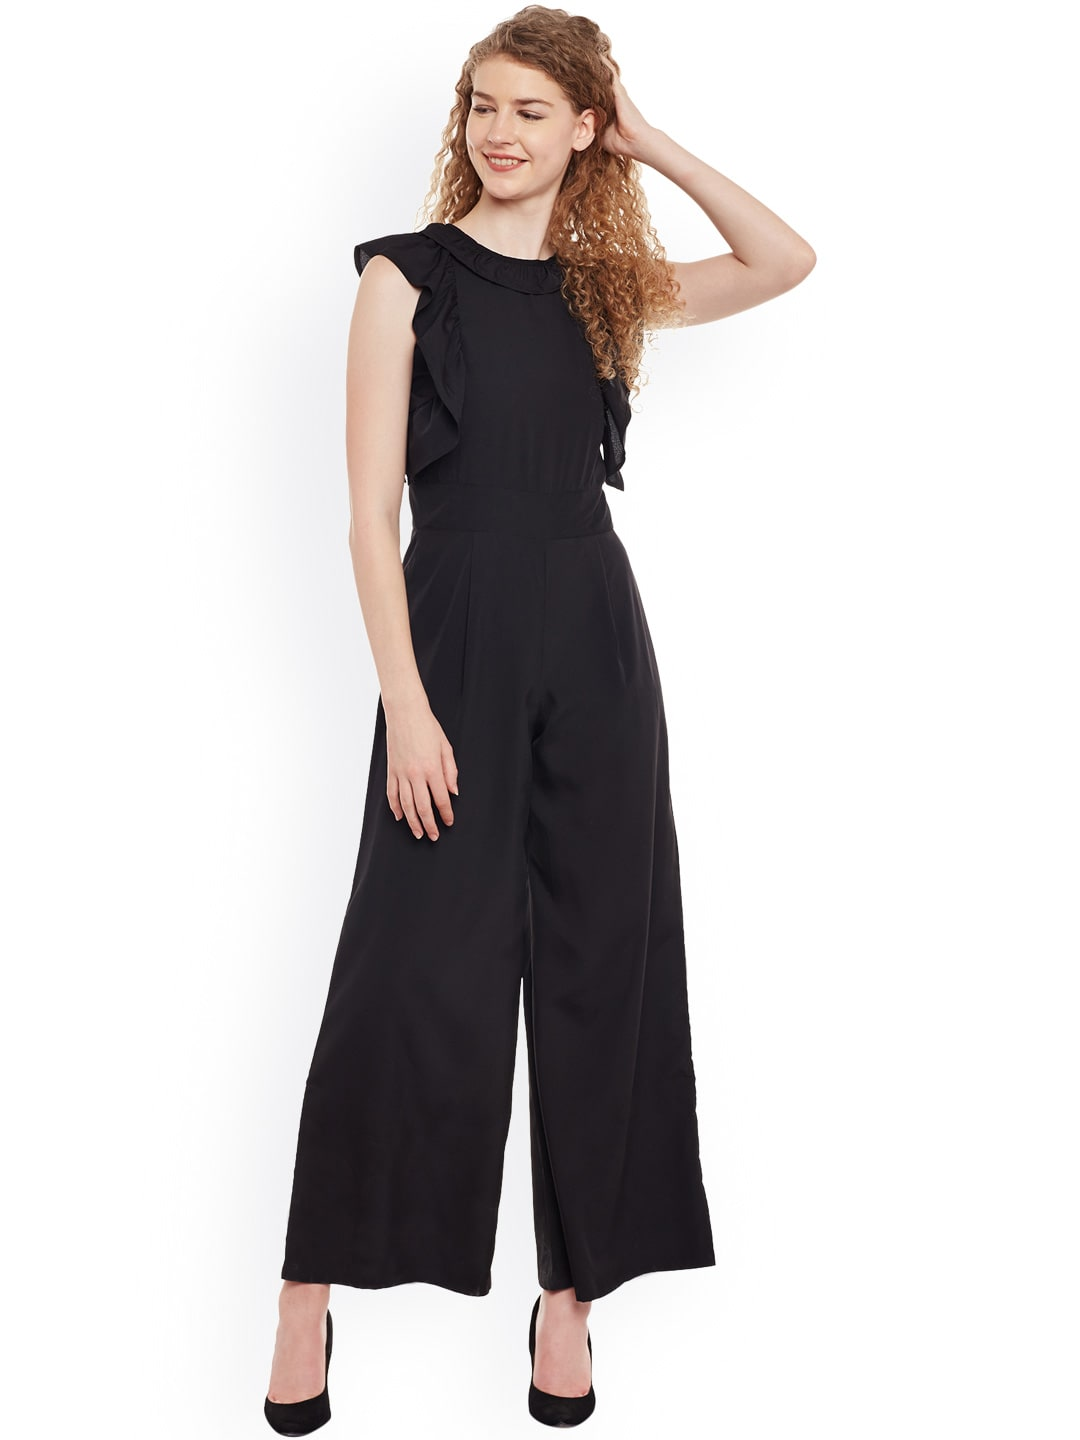 66a1d699178 Women s Jumpsuits - Buy Jumpsuits for Women Online in India